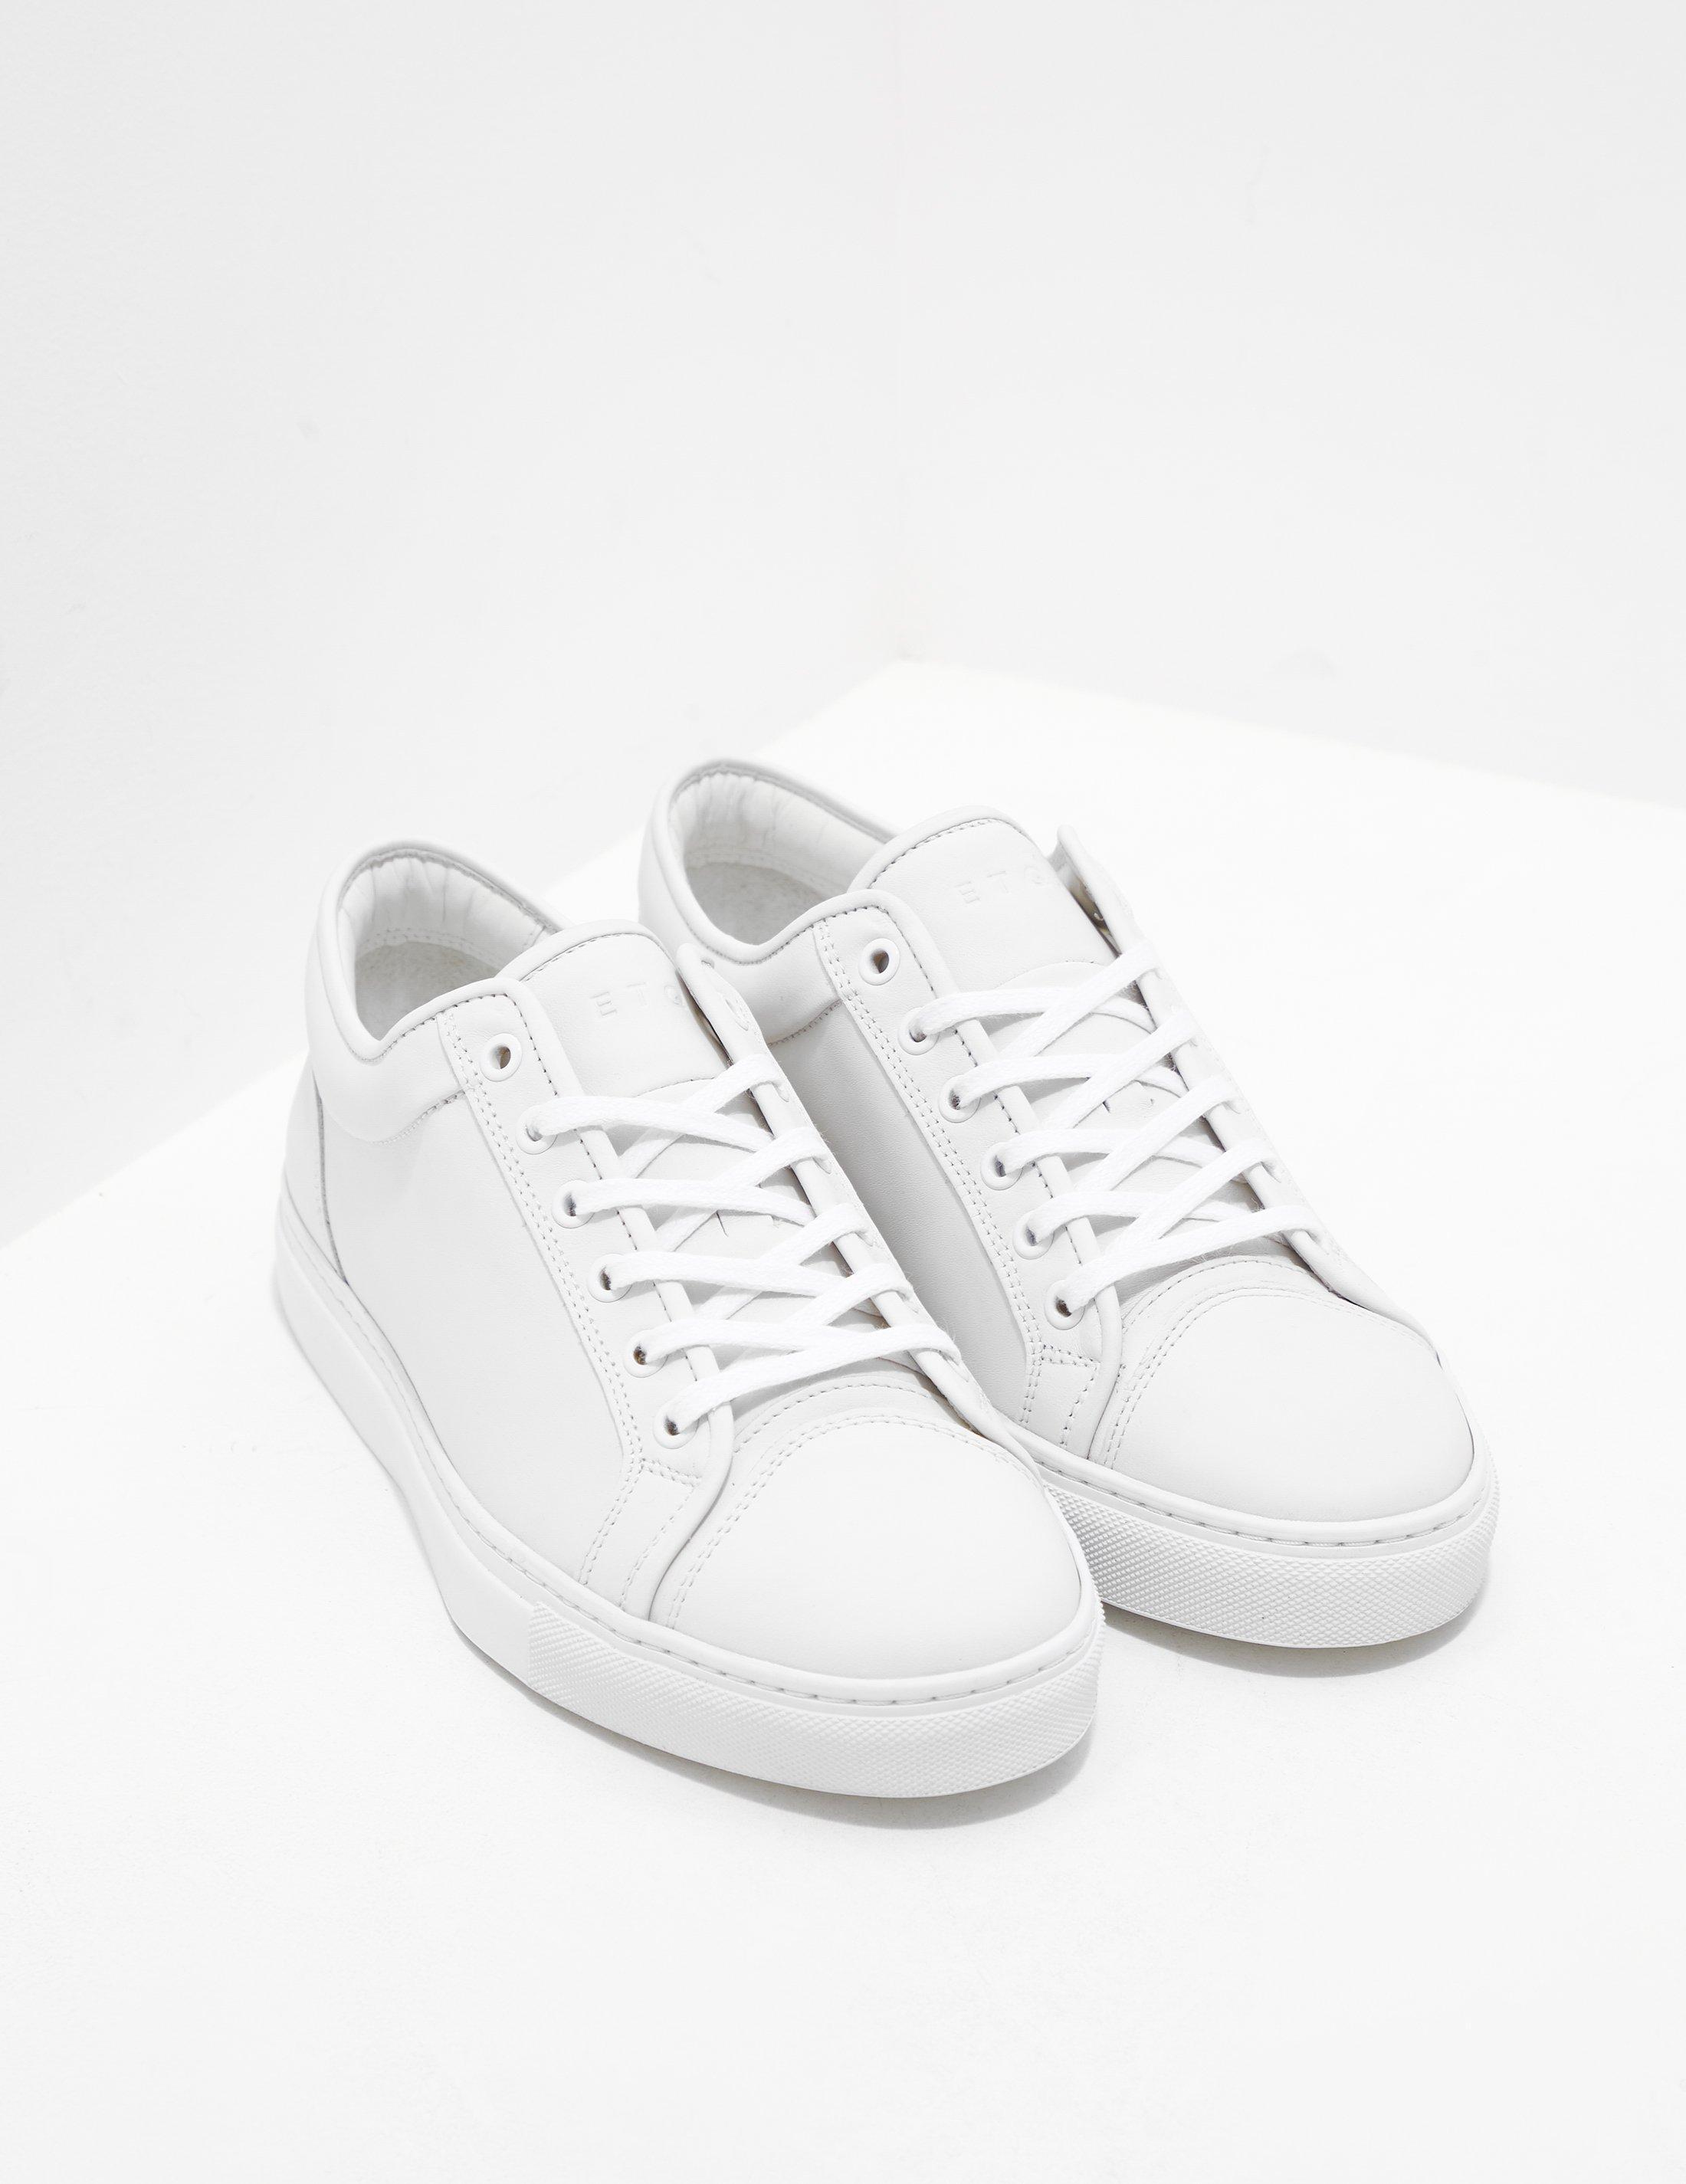 Etq Amsterdam Mens Low Top Trainers White in White for Men - Lyst af54692f47bc